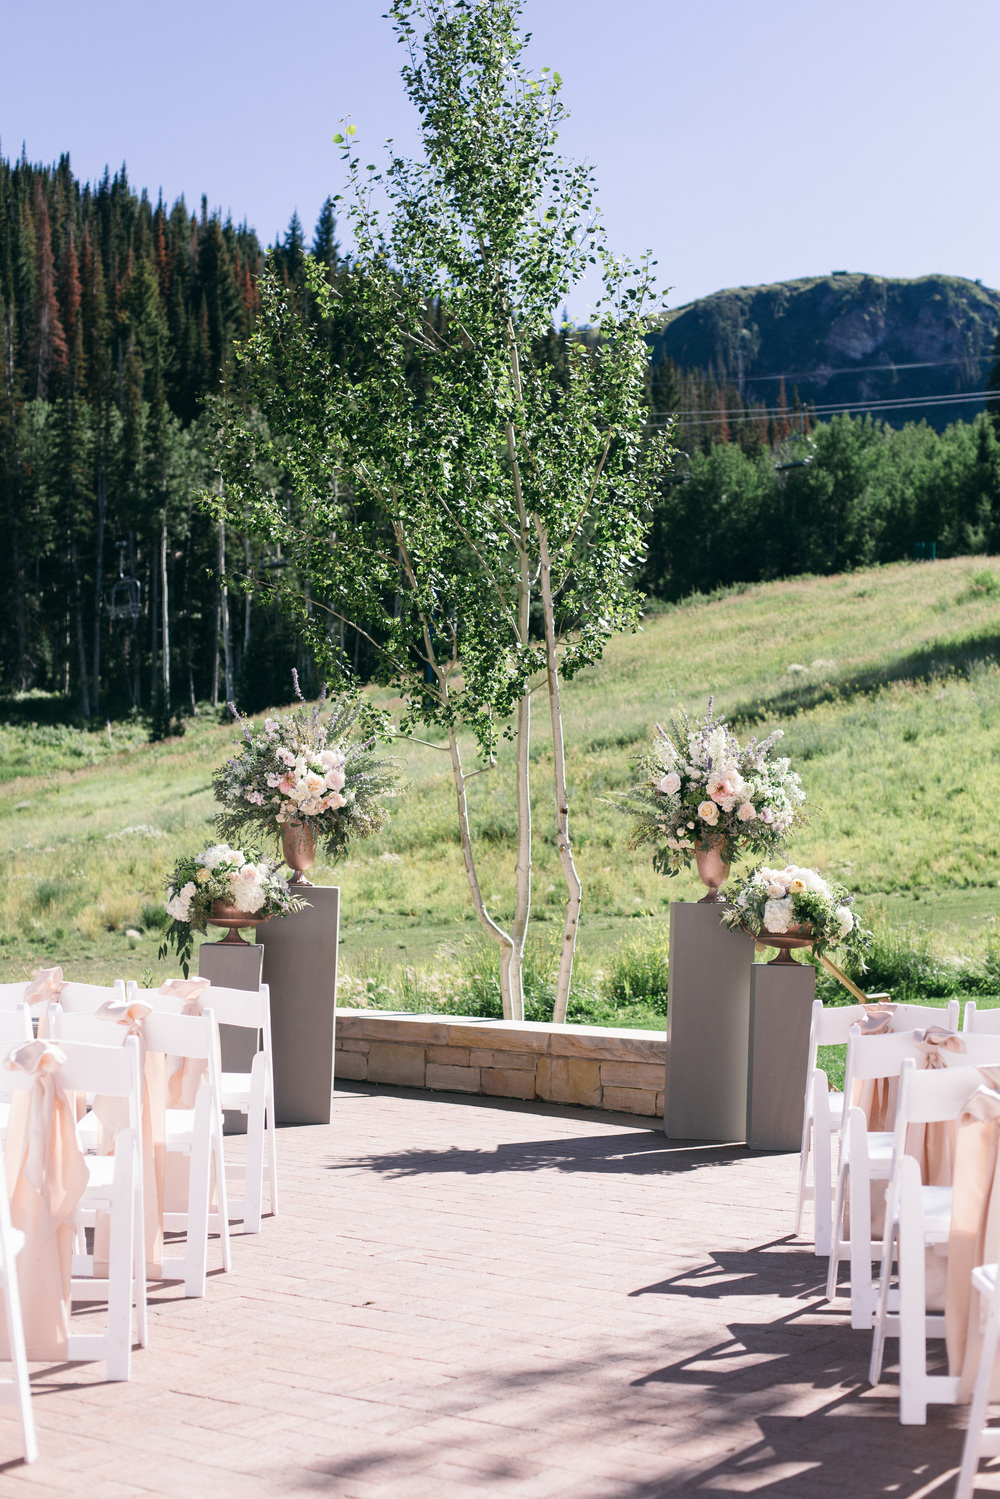 Montage Deer Valley Wedding | Michelle Leo Events | Utah Event Planner and Designer | Shannon Elizabeth Photography